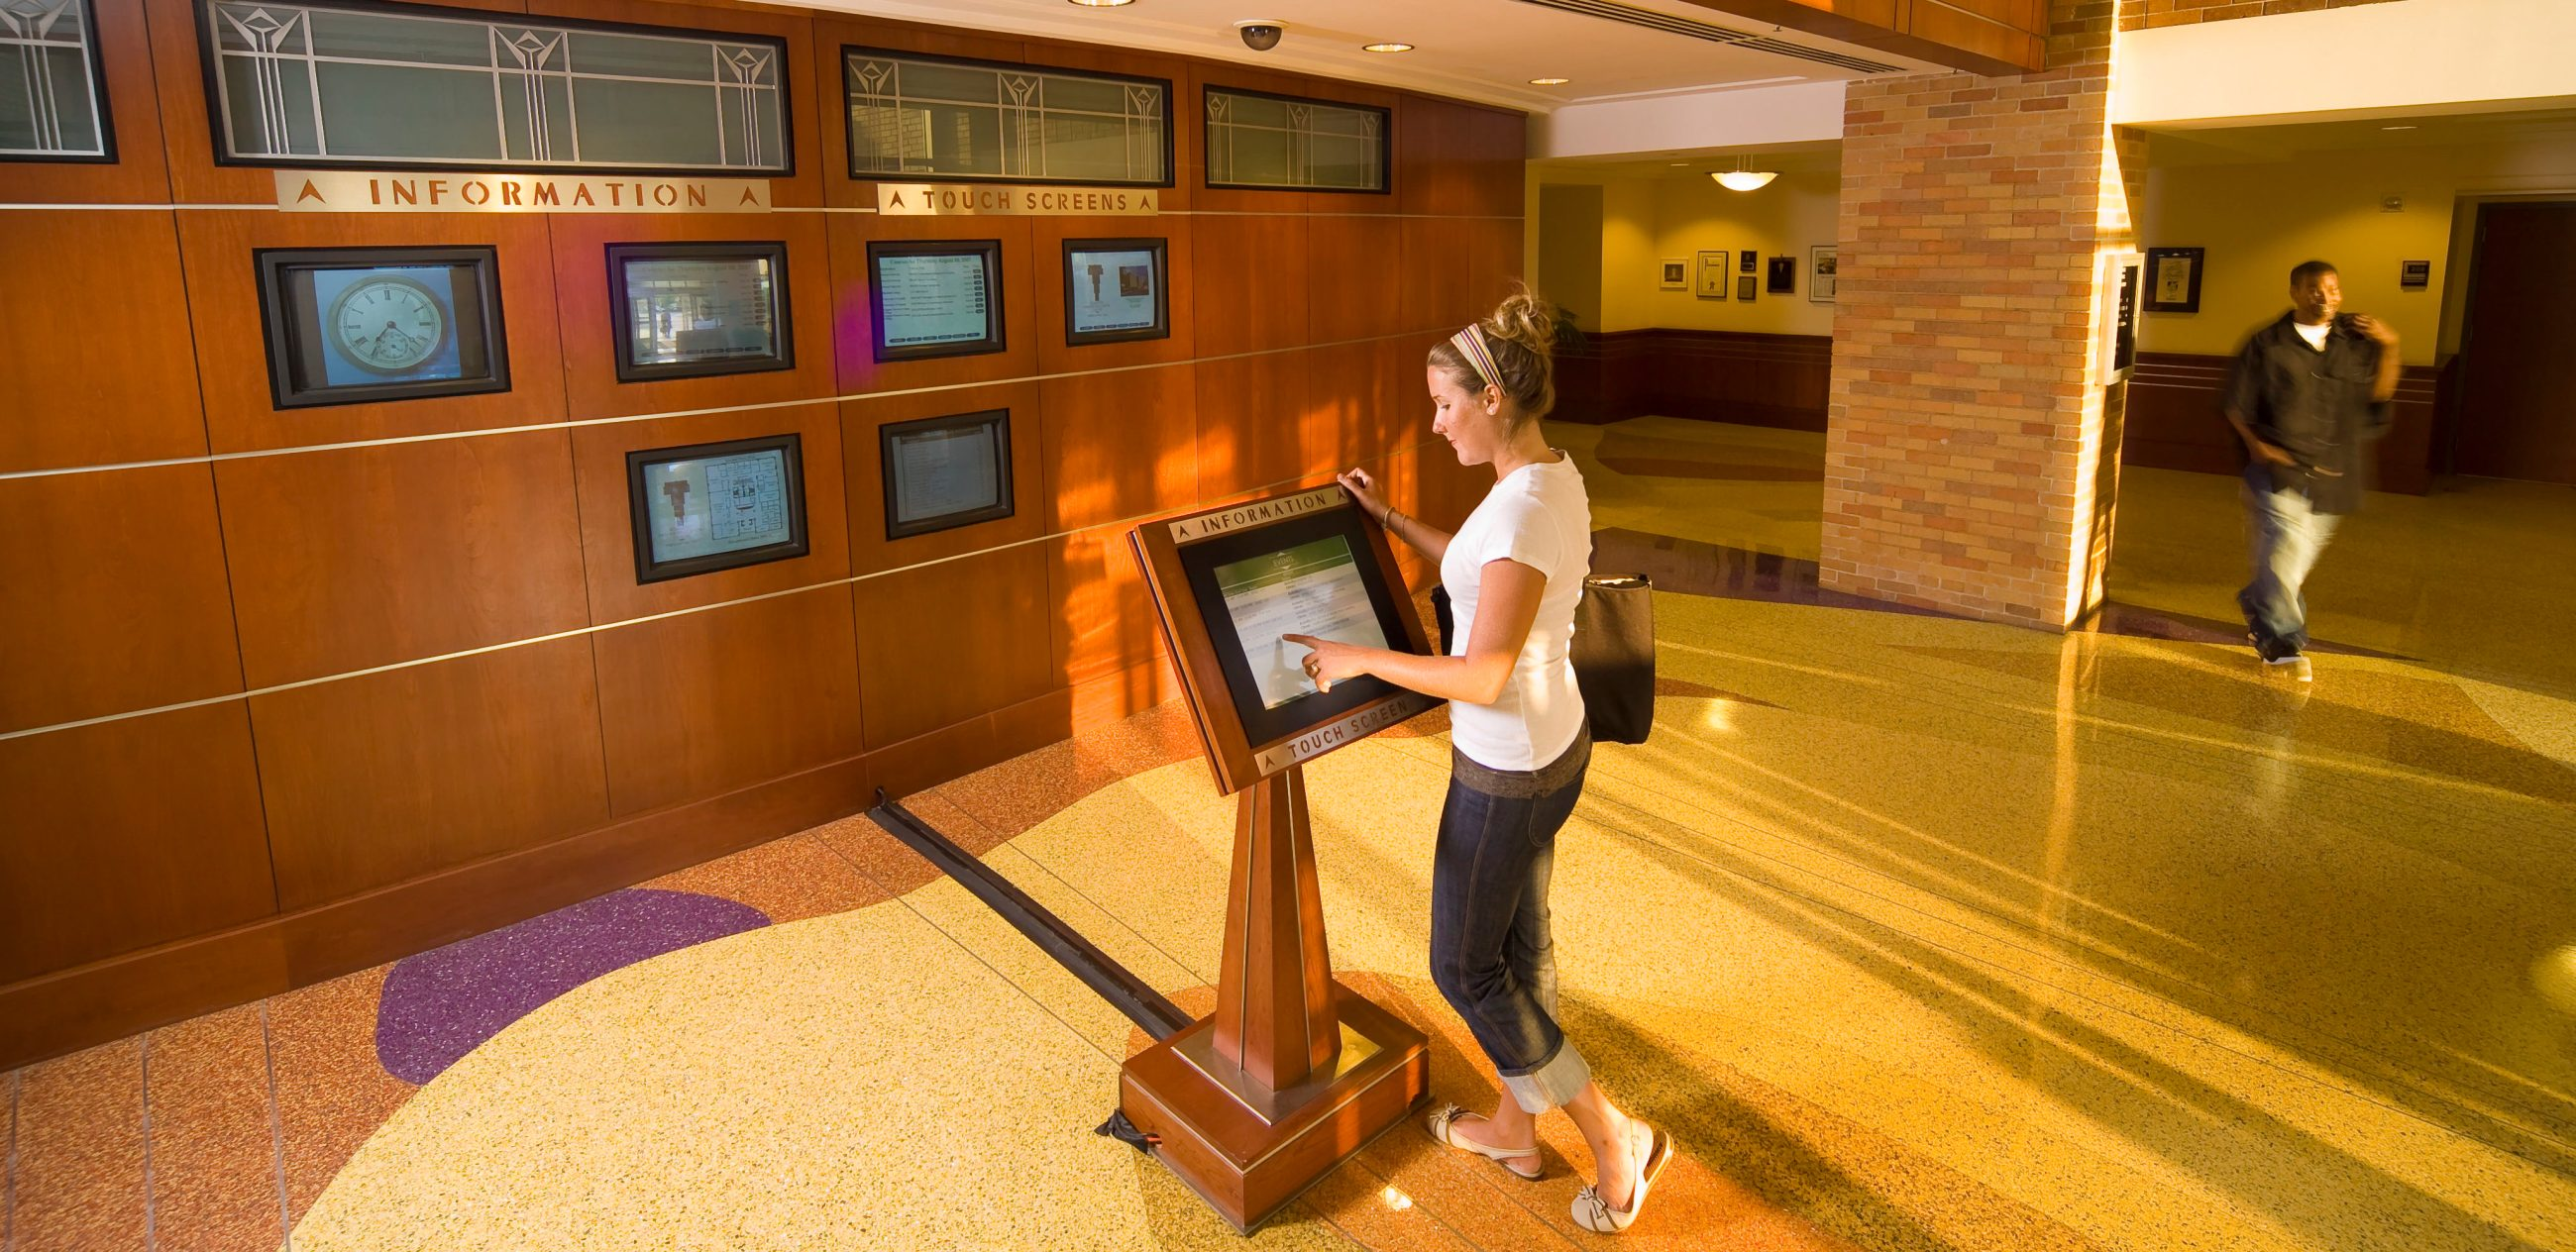 Woman using a touch-screen information kiosk